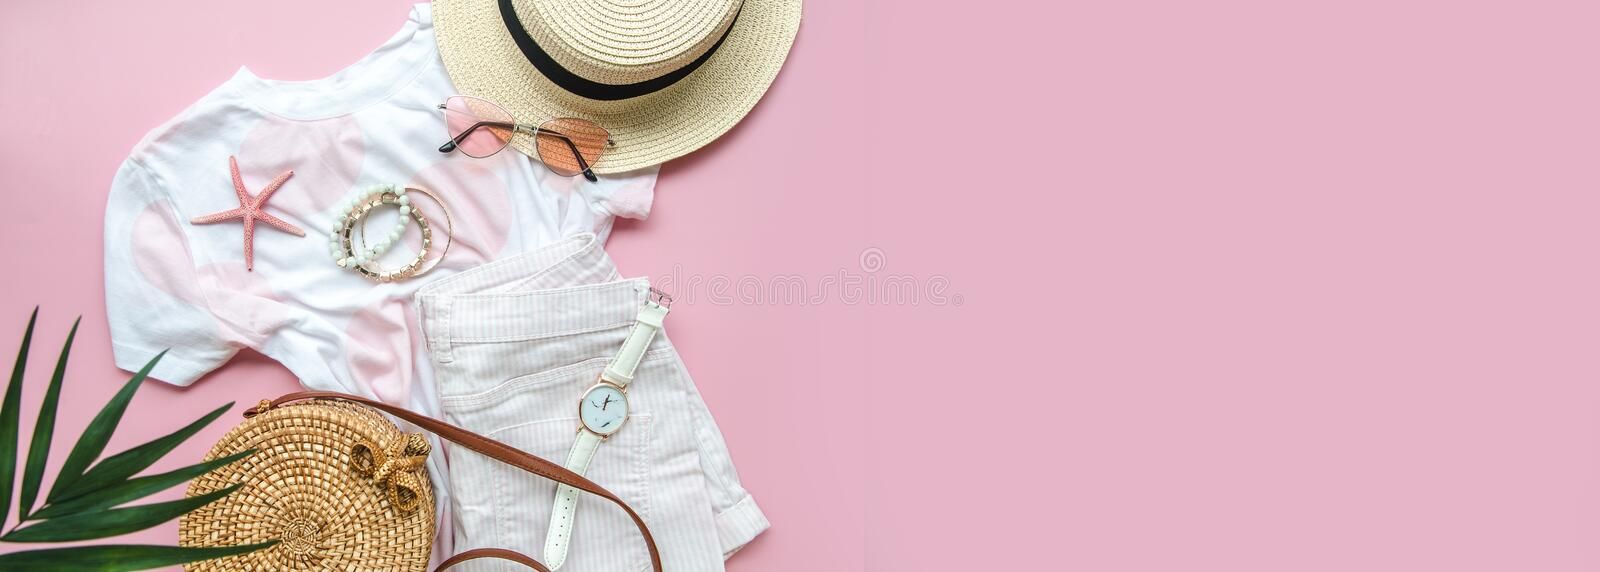 Female summer beach clothes and accessories on a pink background. Top view wide banner with copy space for travel agency.  stock photo